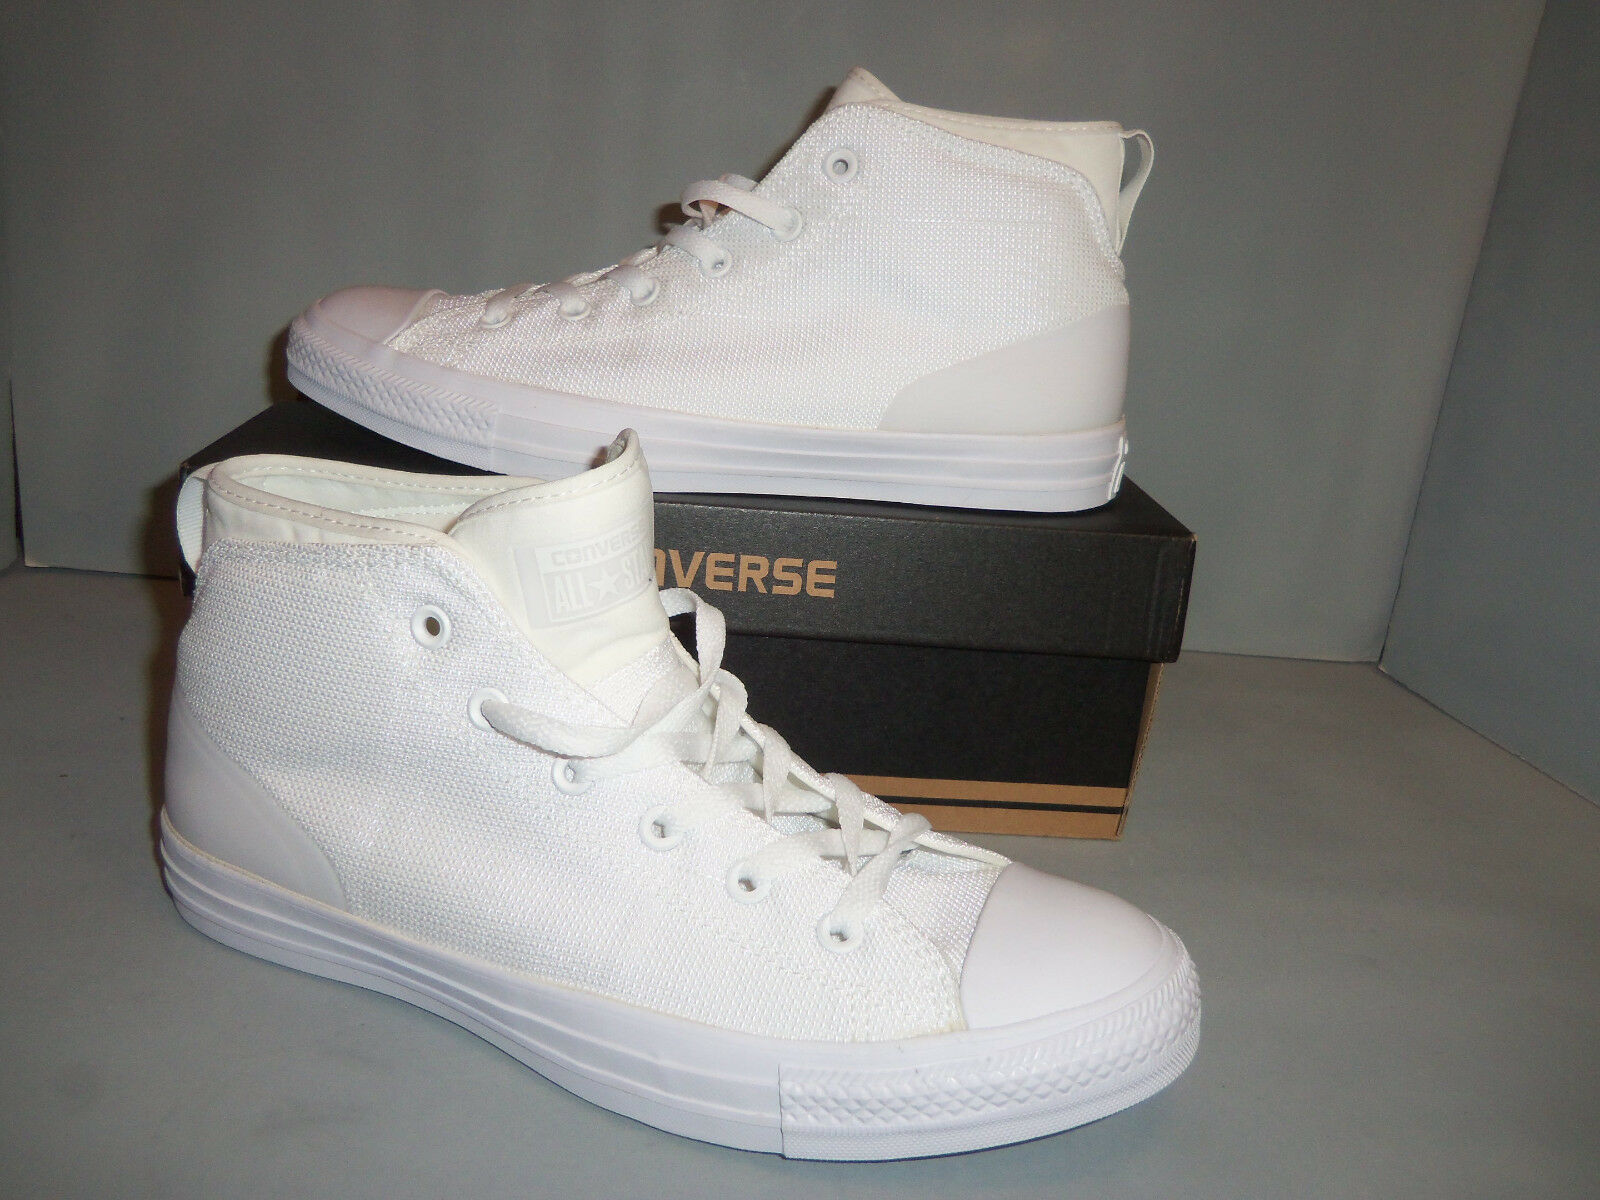 Converse Men's Chuck Taylor All Star Syde Street Mid-Top Casual Shoes White size